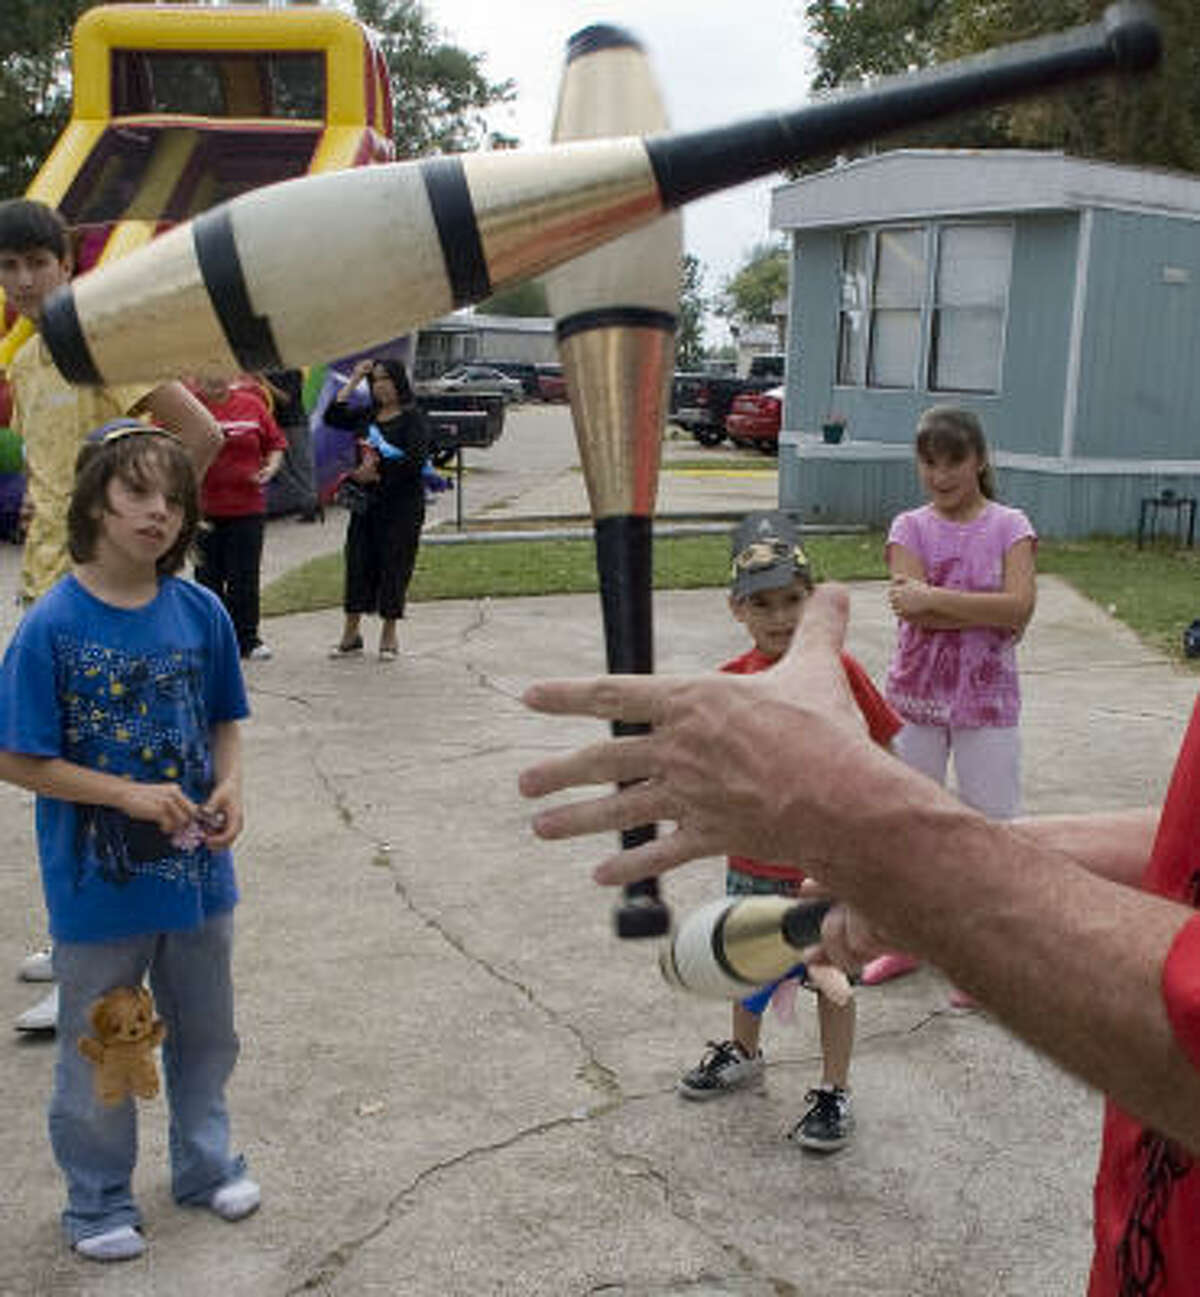 Alex Martinez, left, his brother, Ernesto, and Erika Deleon admire the dexterity of a juggler who entertained the resident owners of the Pasadena Trails mobile home park on Saturday.